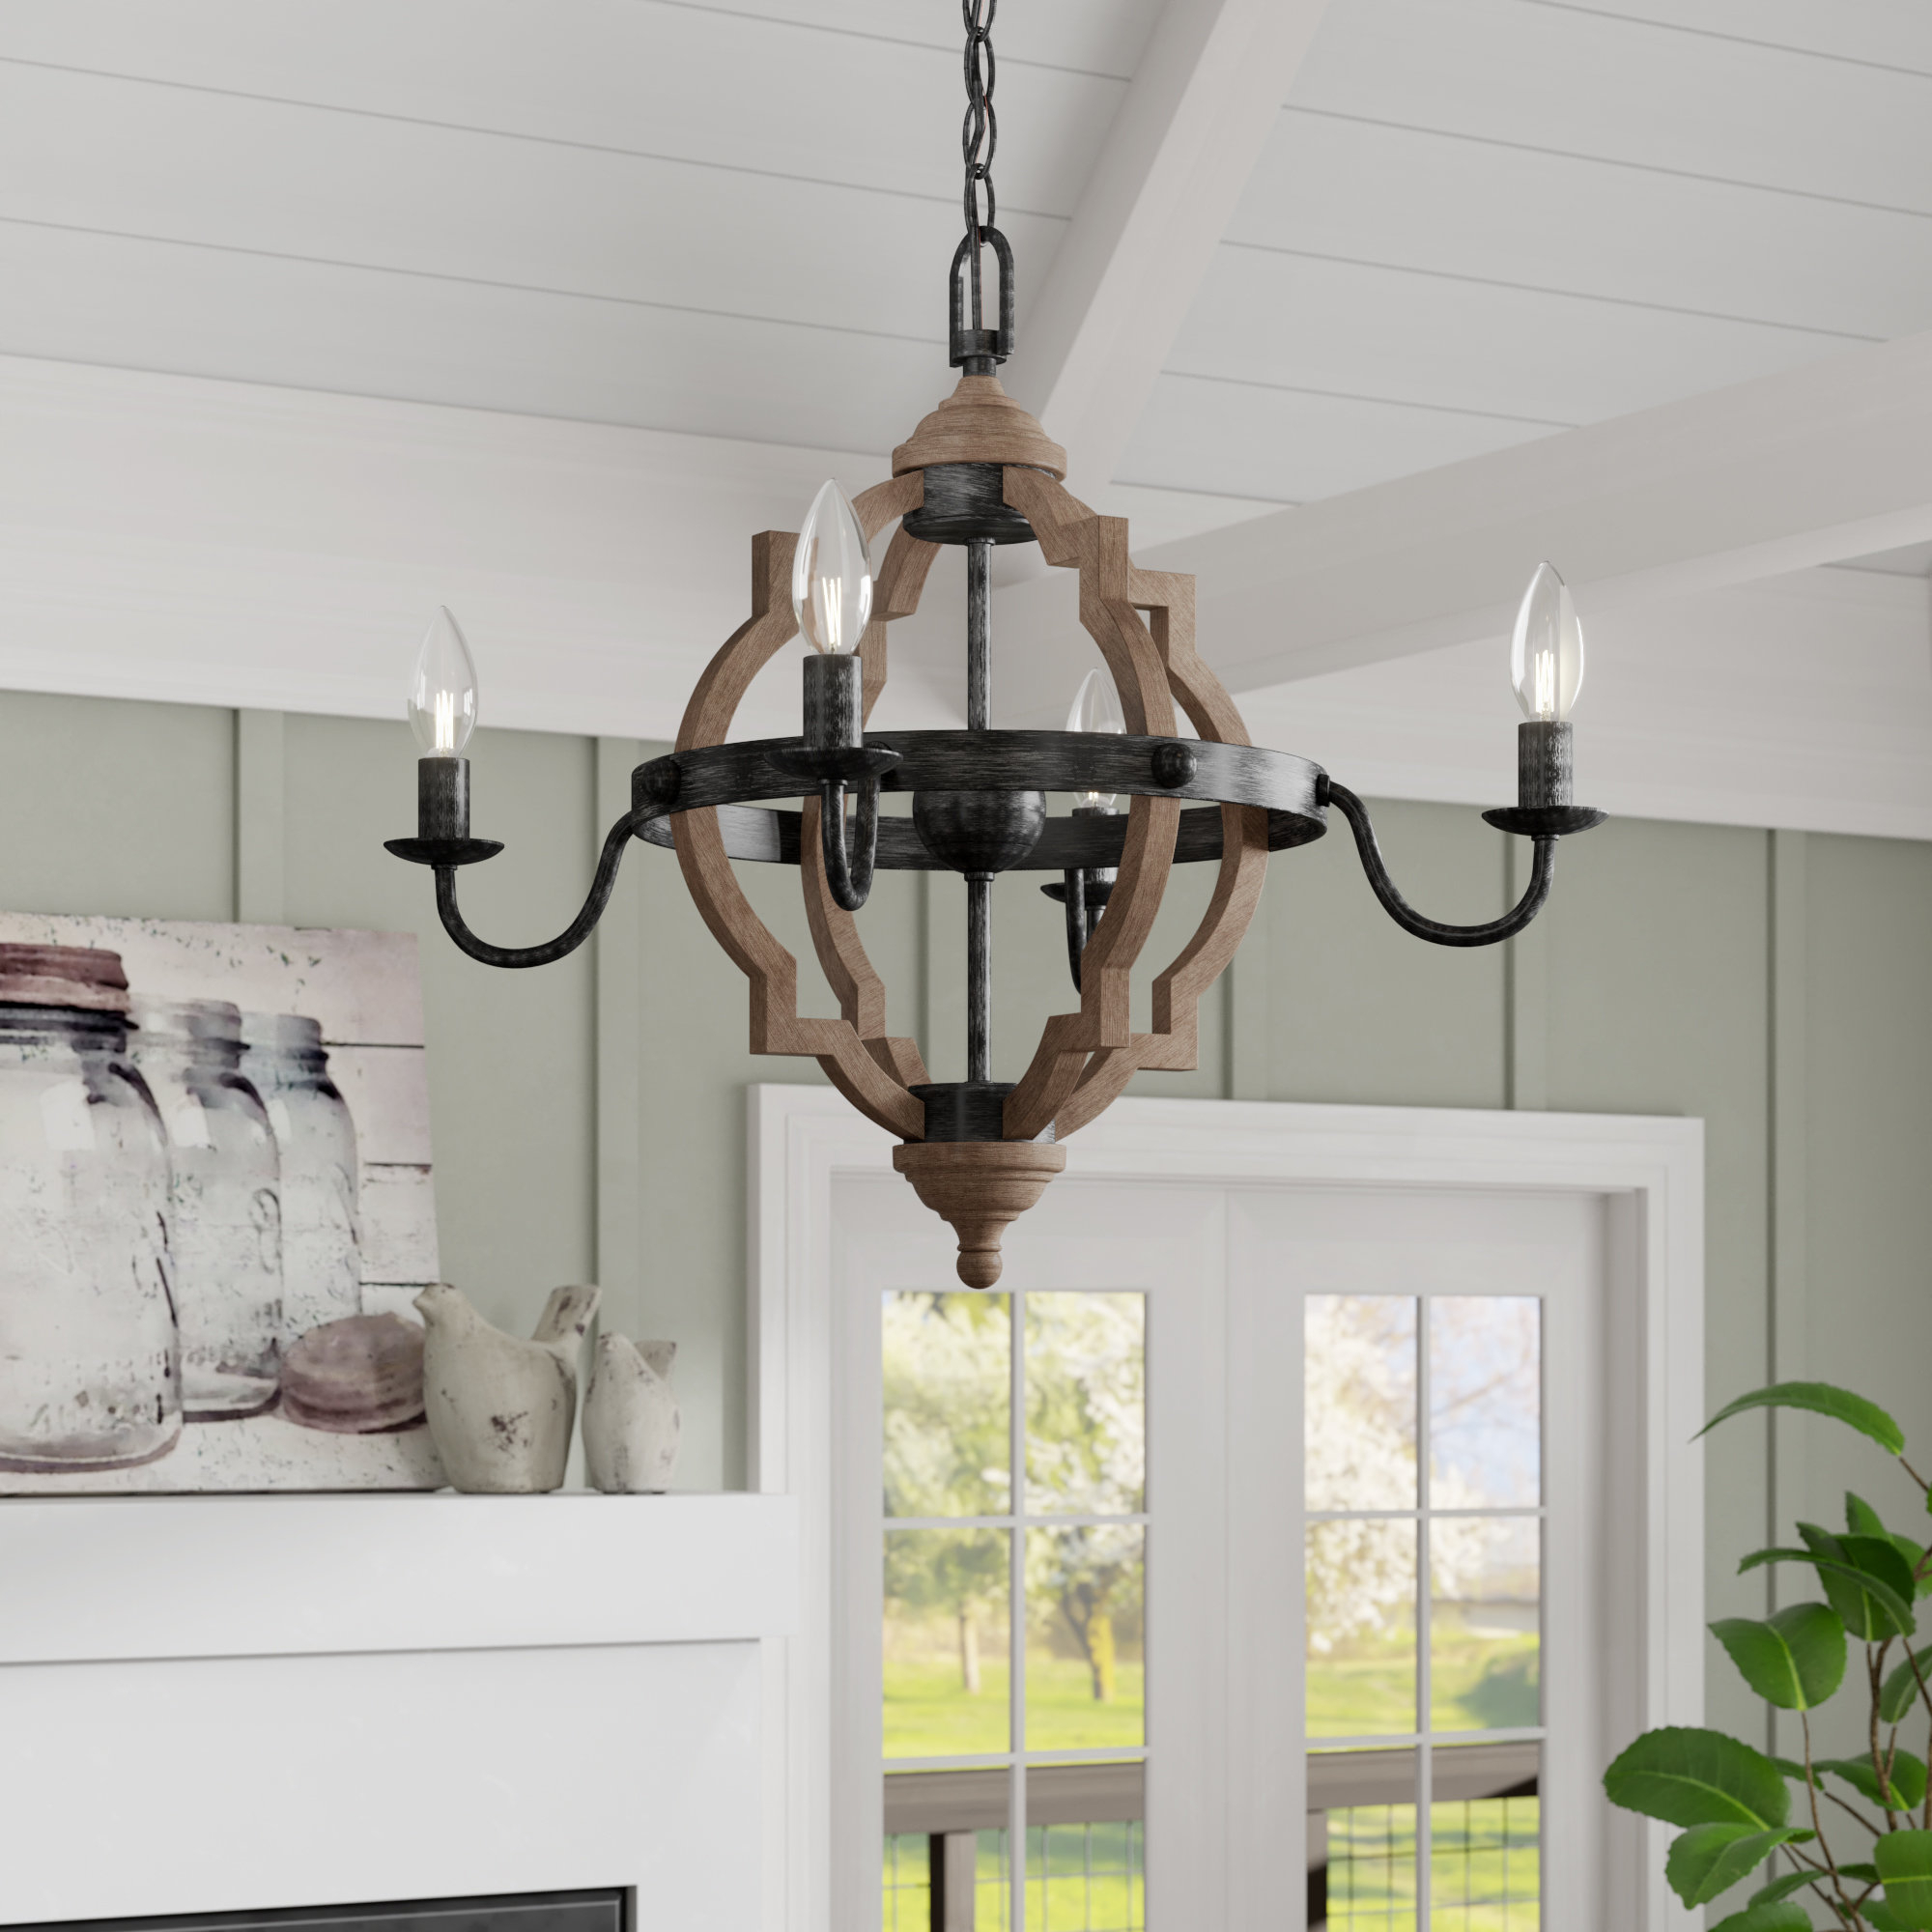 Widely Used Bennington 6 Light Candle Style Chandeliers Inside Donna 4 Light Candle Style Chandelier (View 12 of 25)